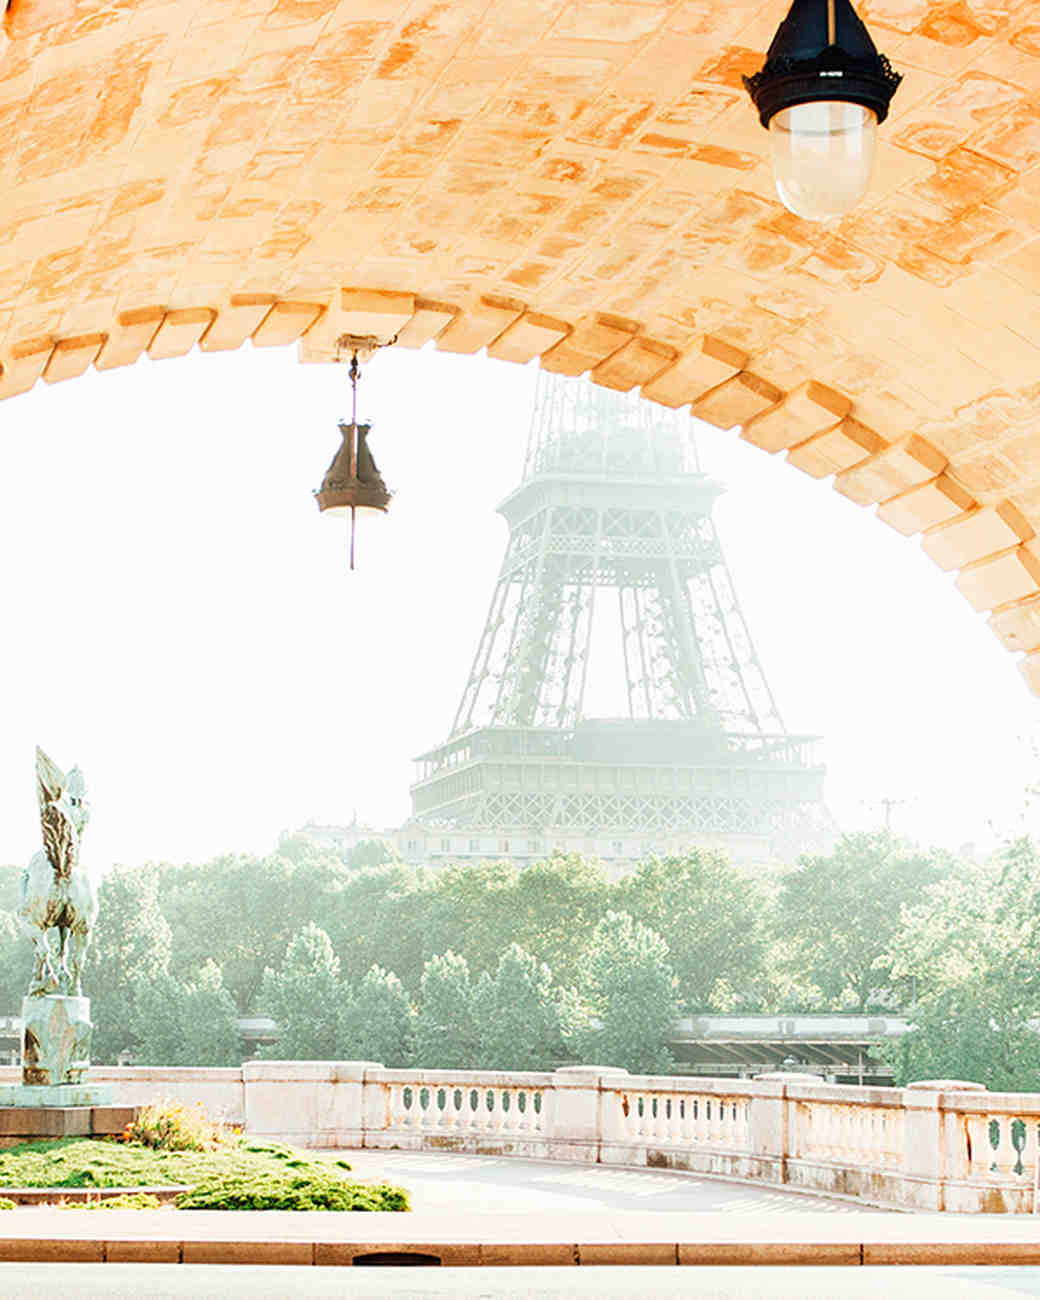 katie-mitchell-photography-where-to-propose-in-paris-pont-bir-hakeim-0815.jpg